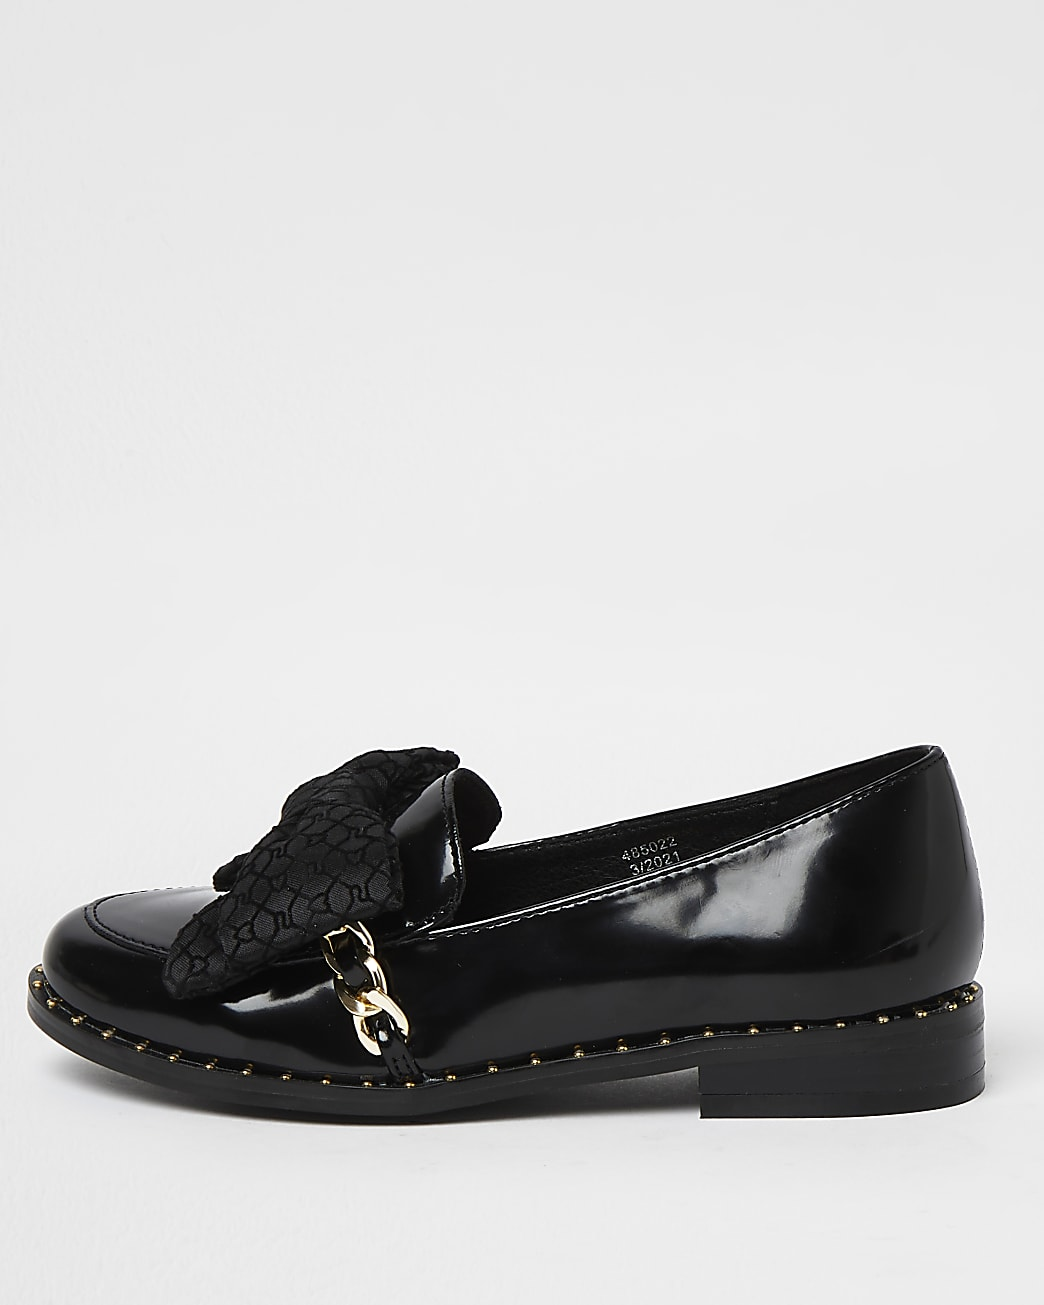 Girls black bow loafers